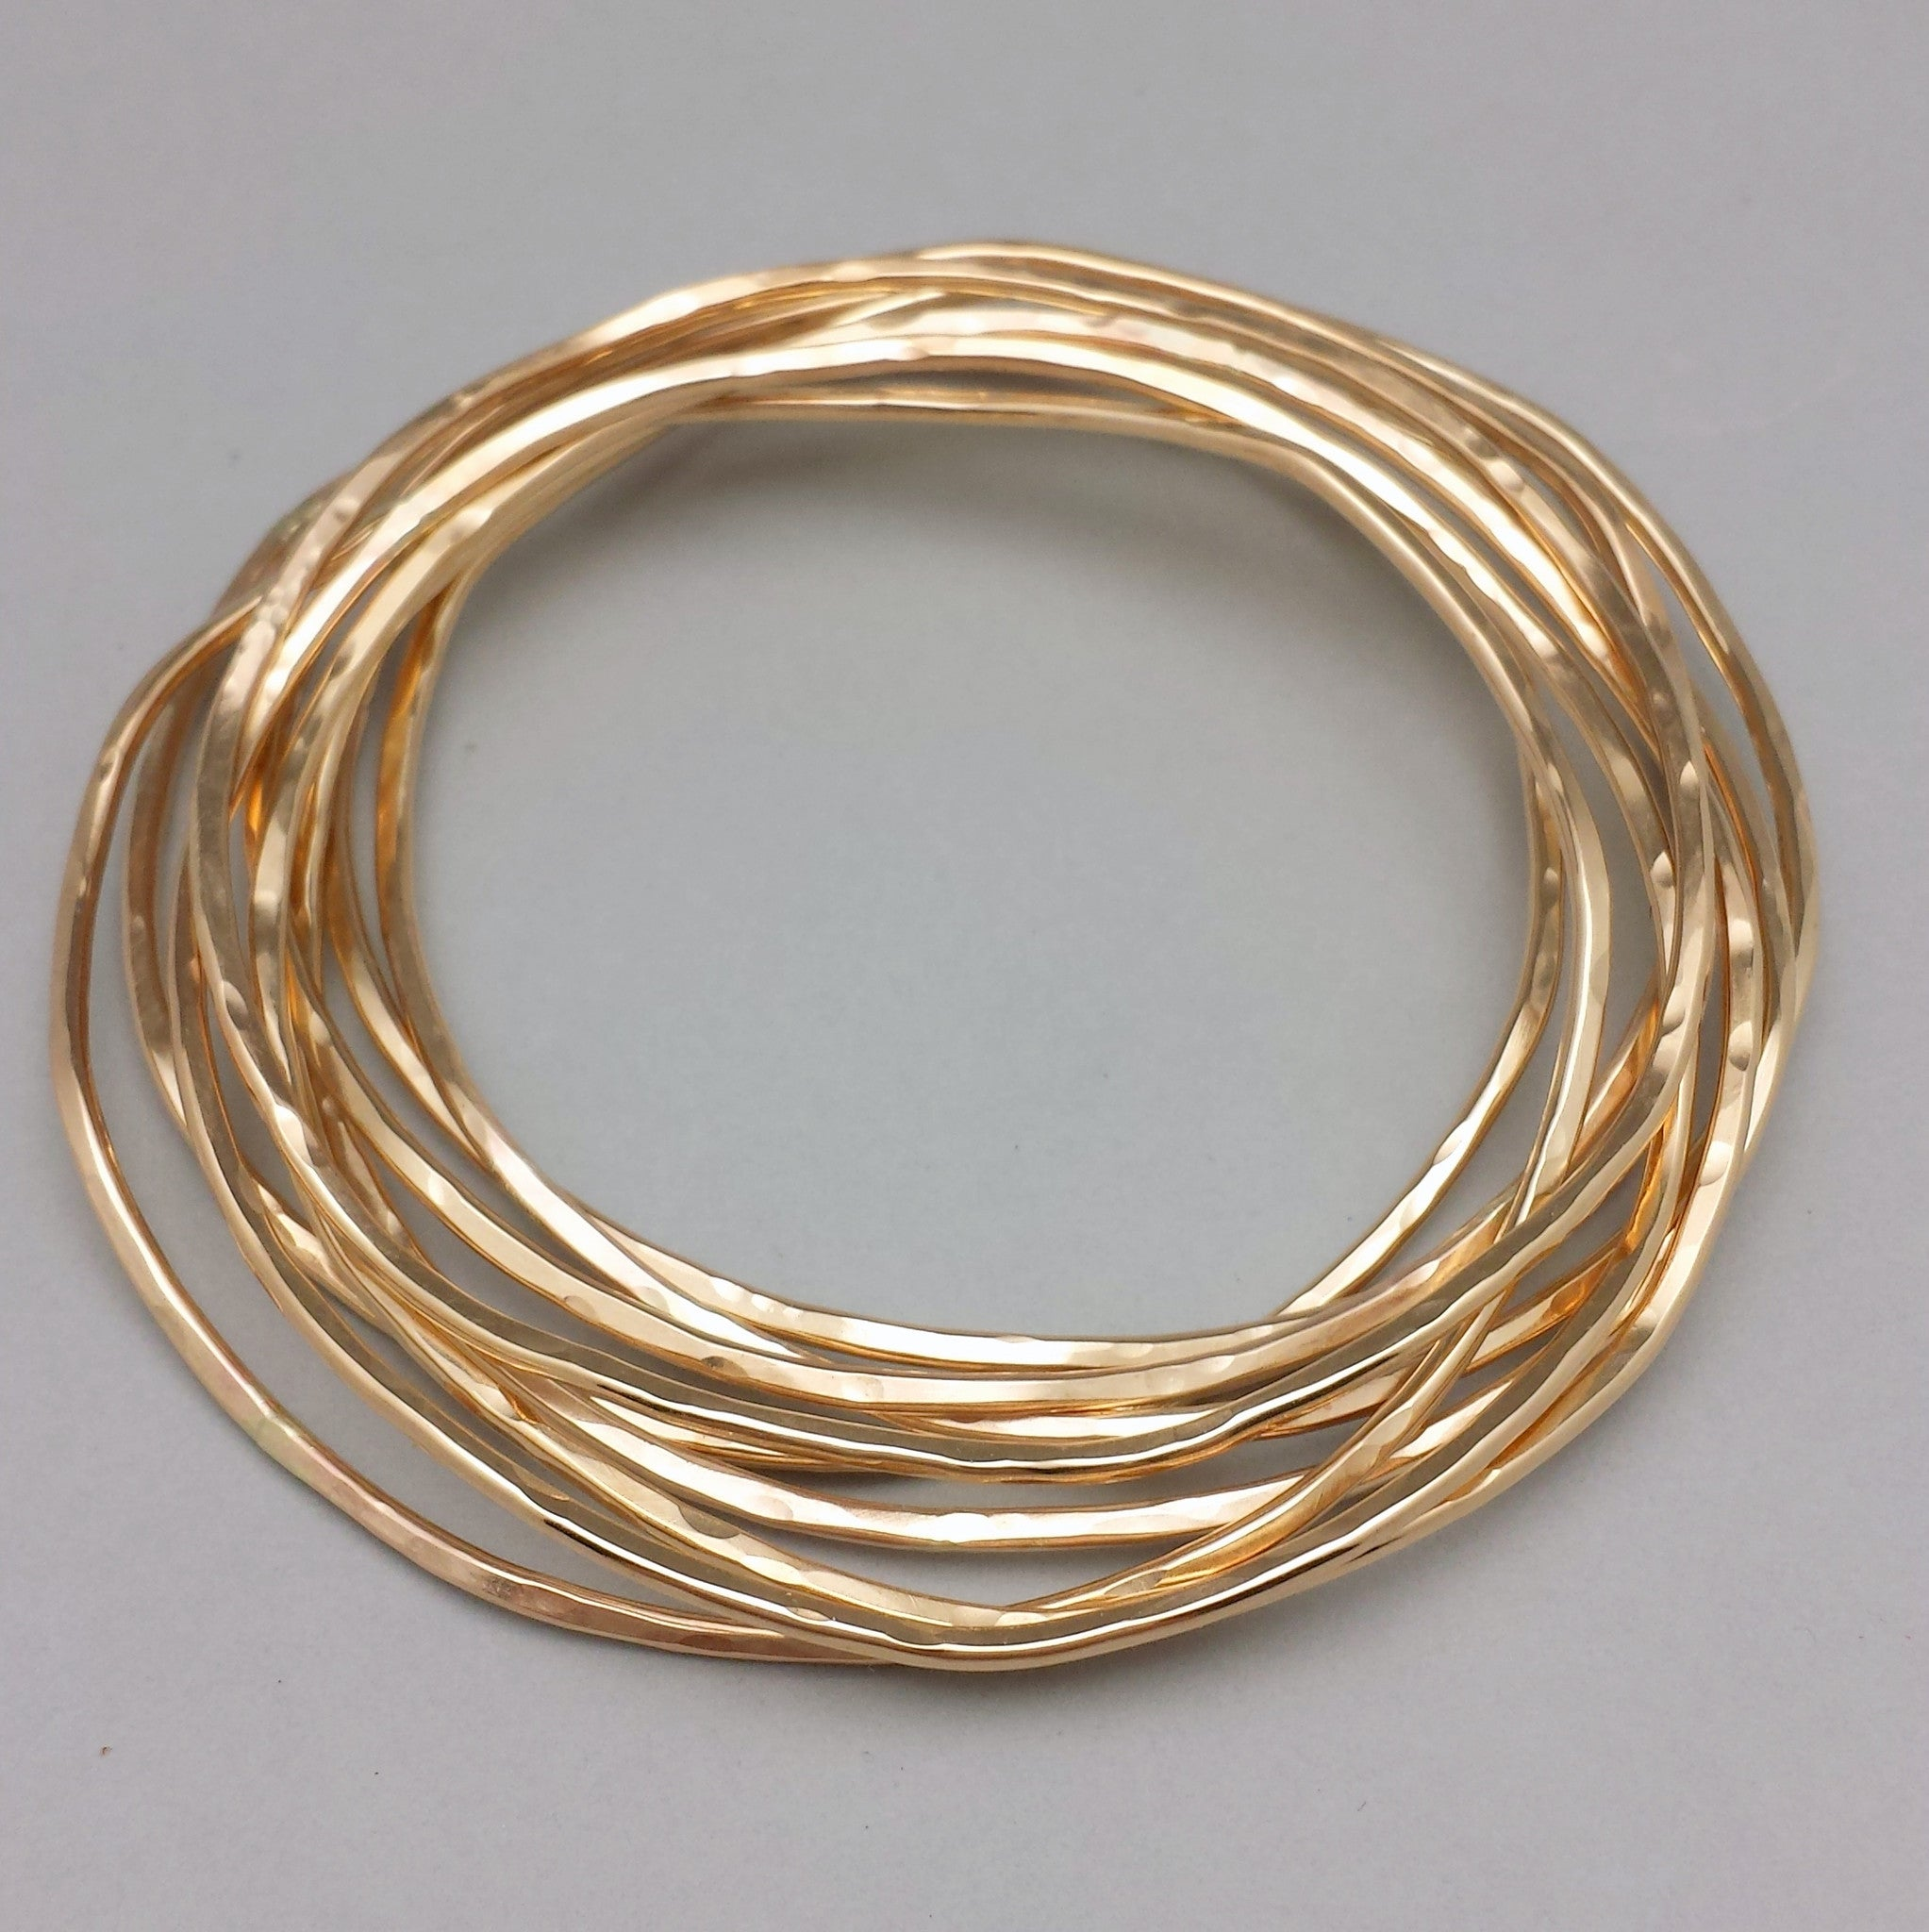 inch bracelet gold cape sterling silver double bracelets jewelry bangles and bangle ball cod index